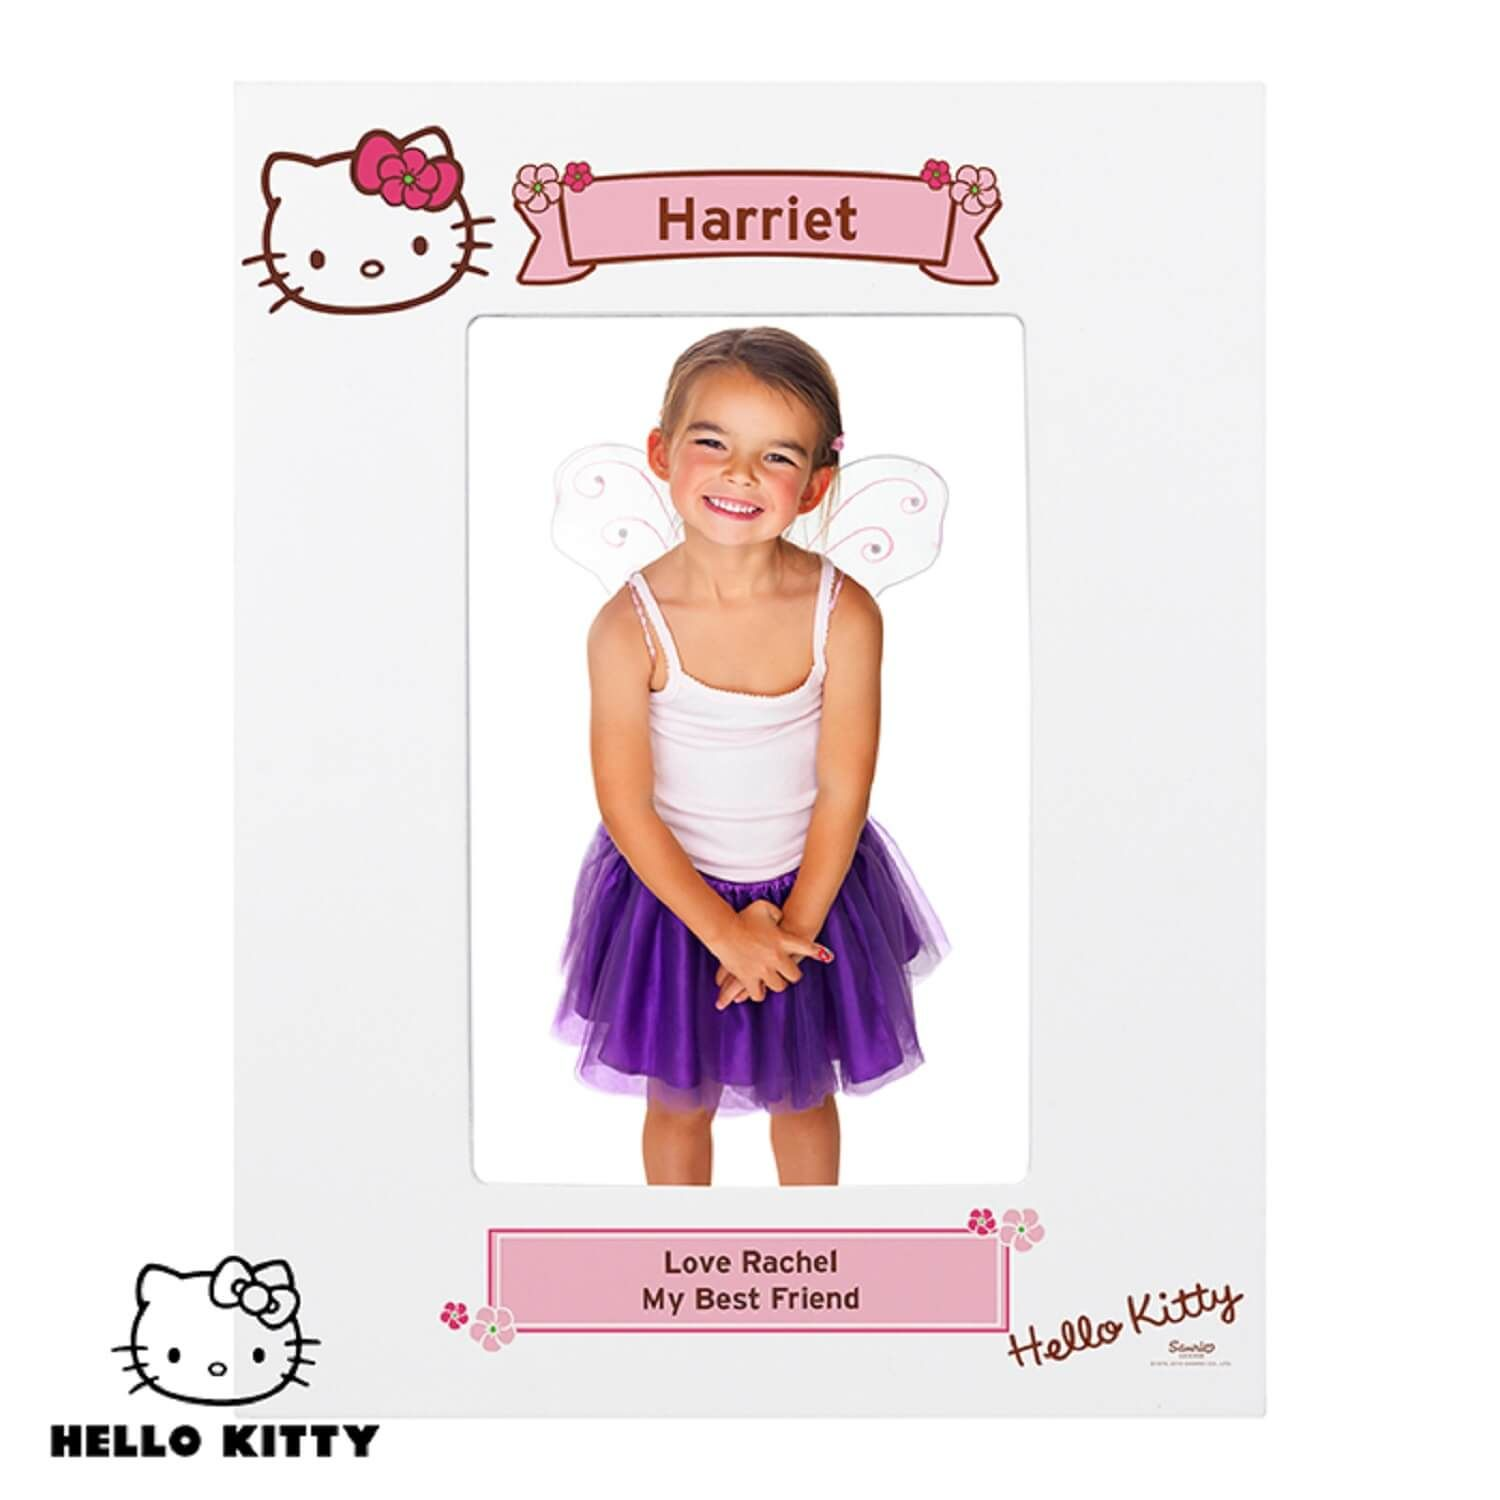 Hello kitty floral personalised 6x4 photo frame https